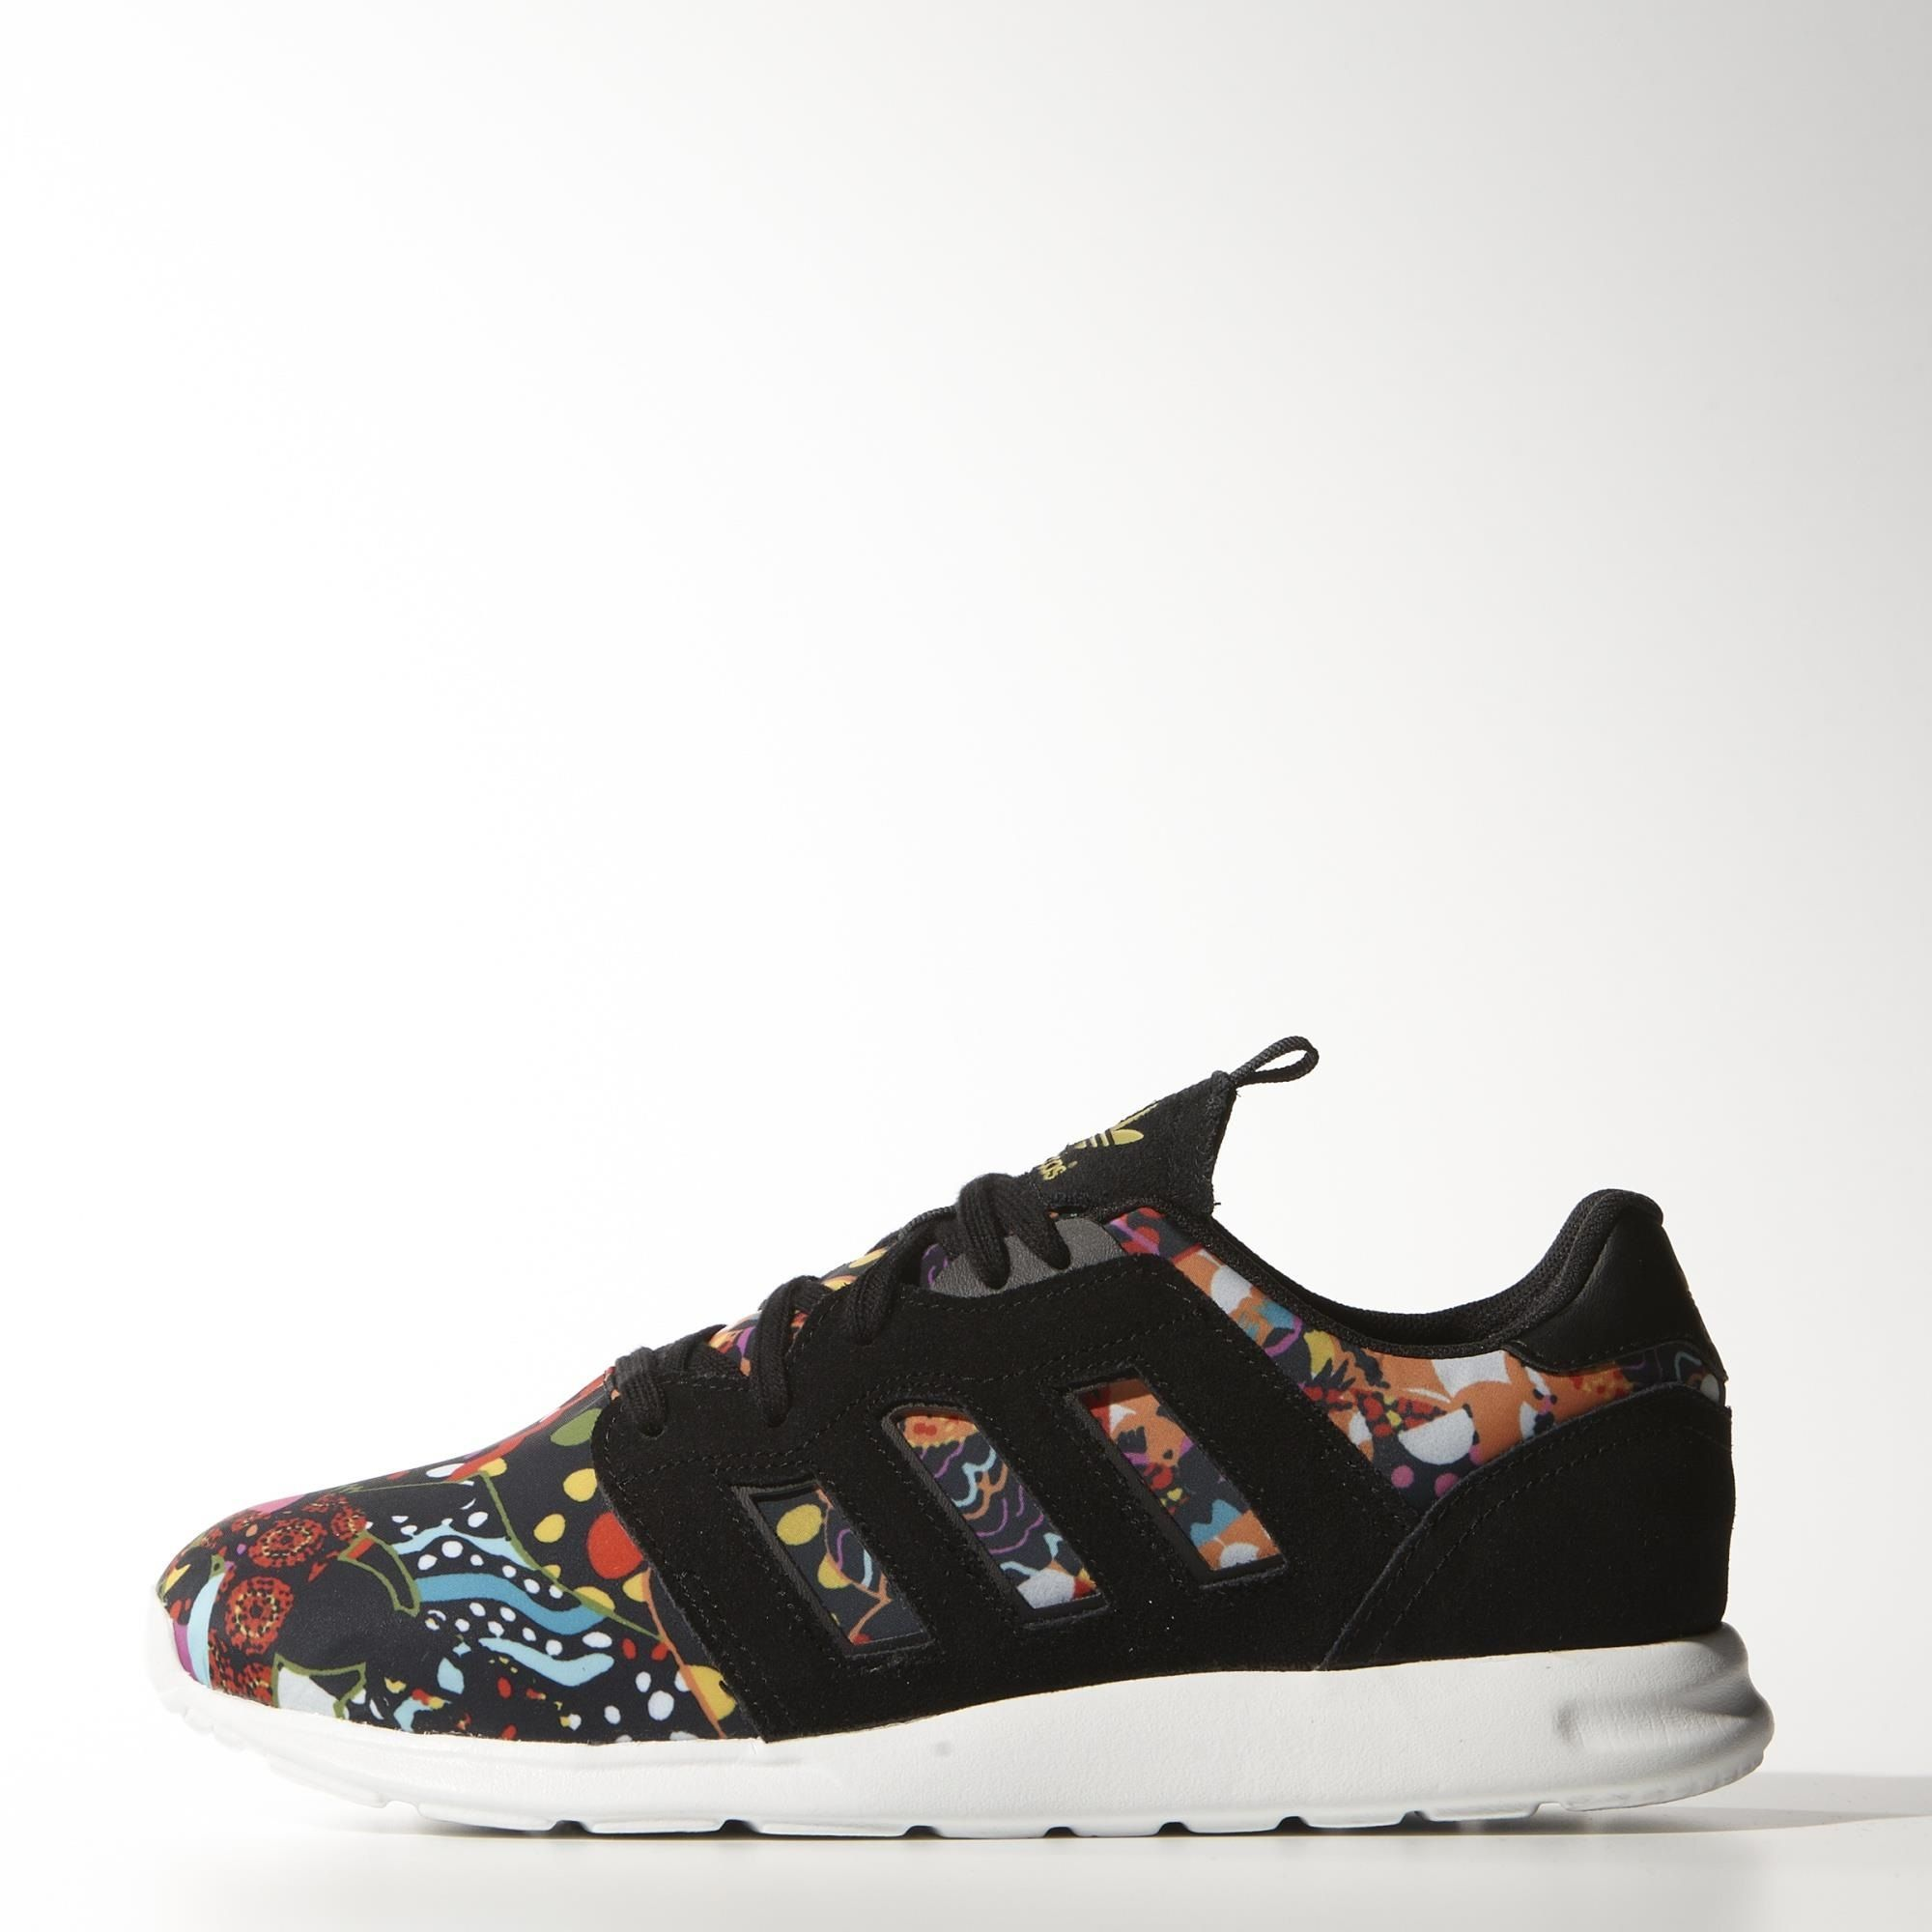 adidas originals zx 500 women cheap